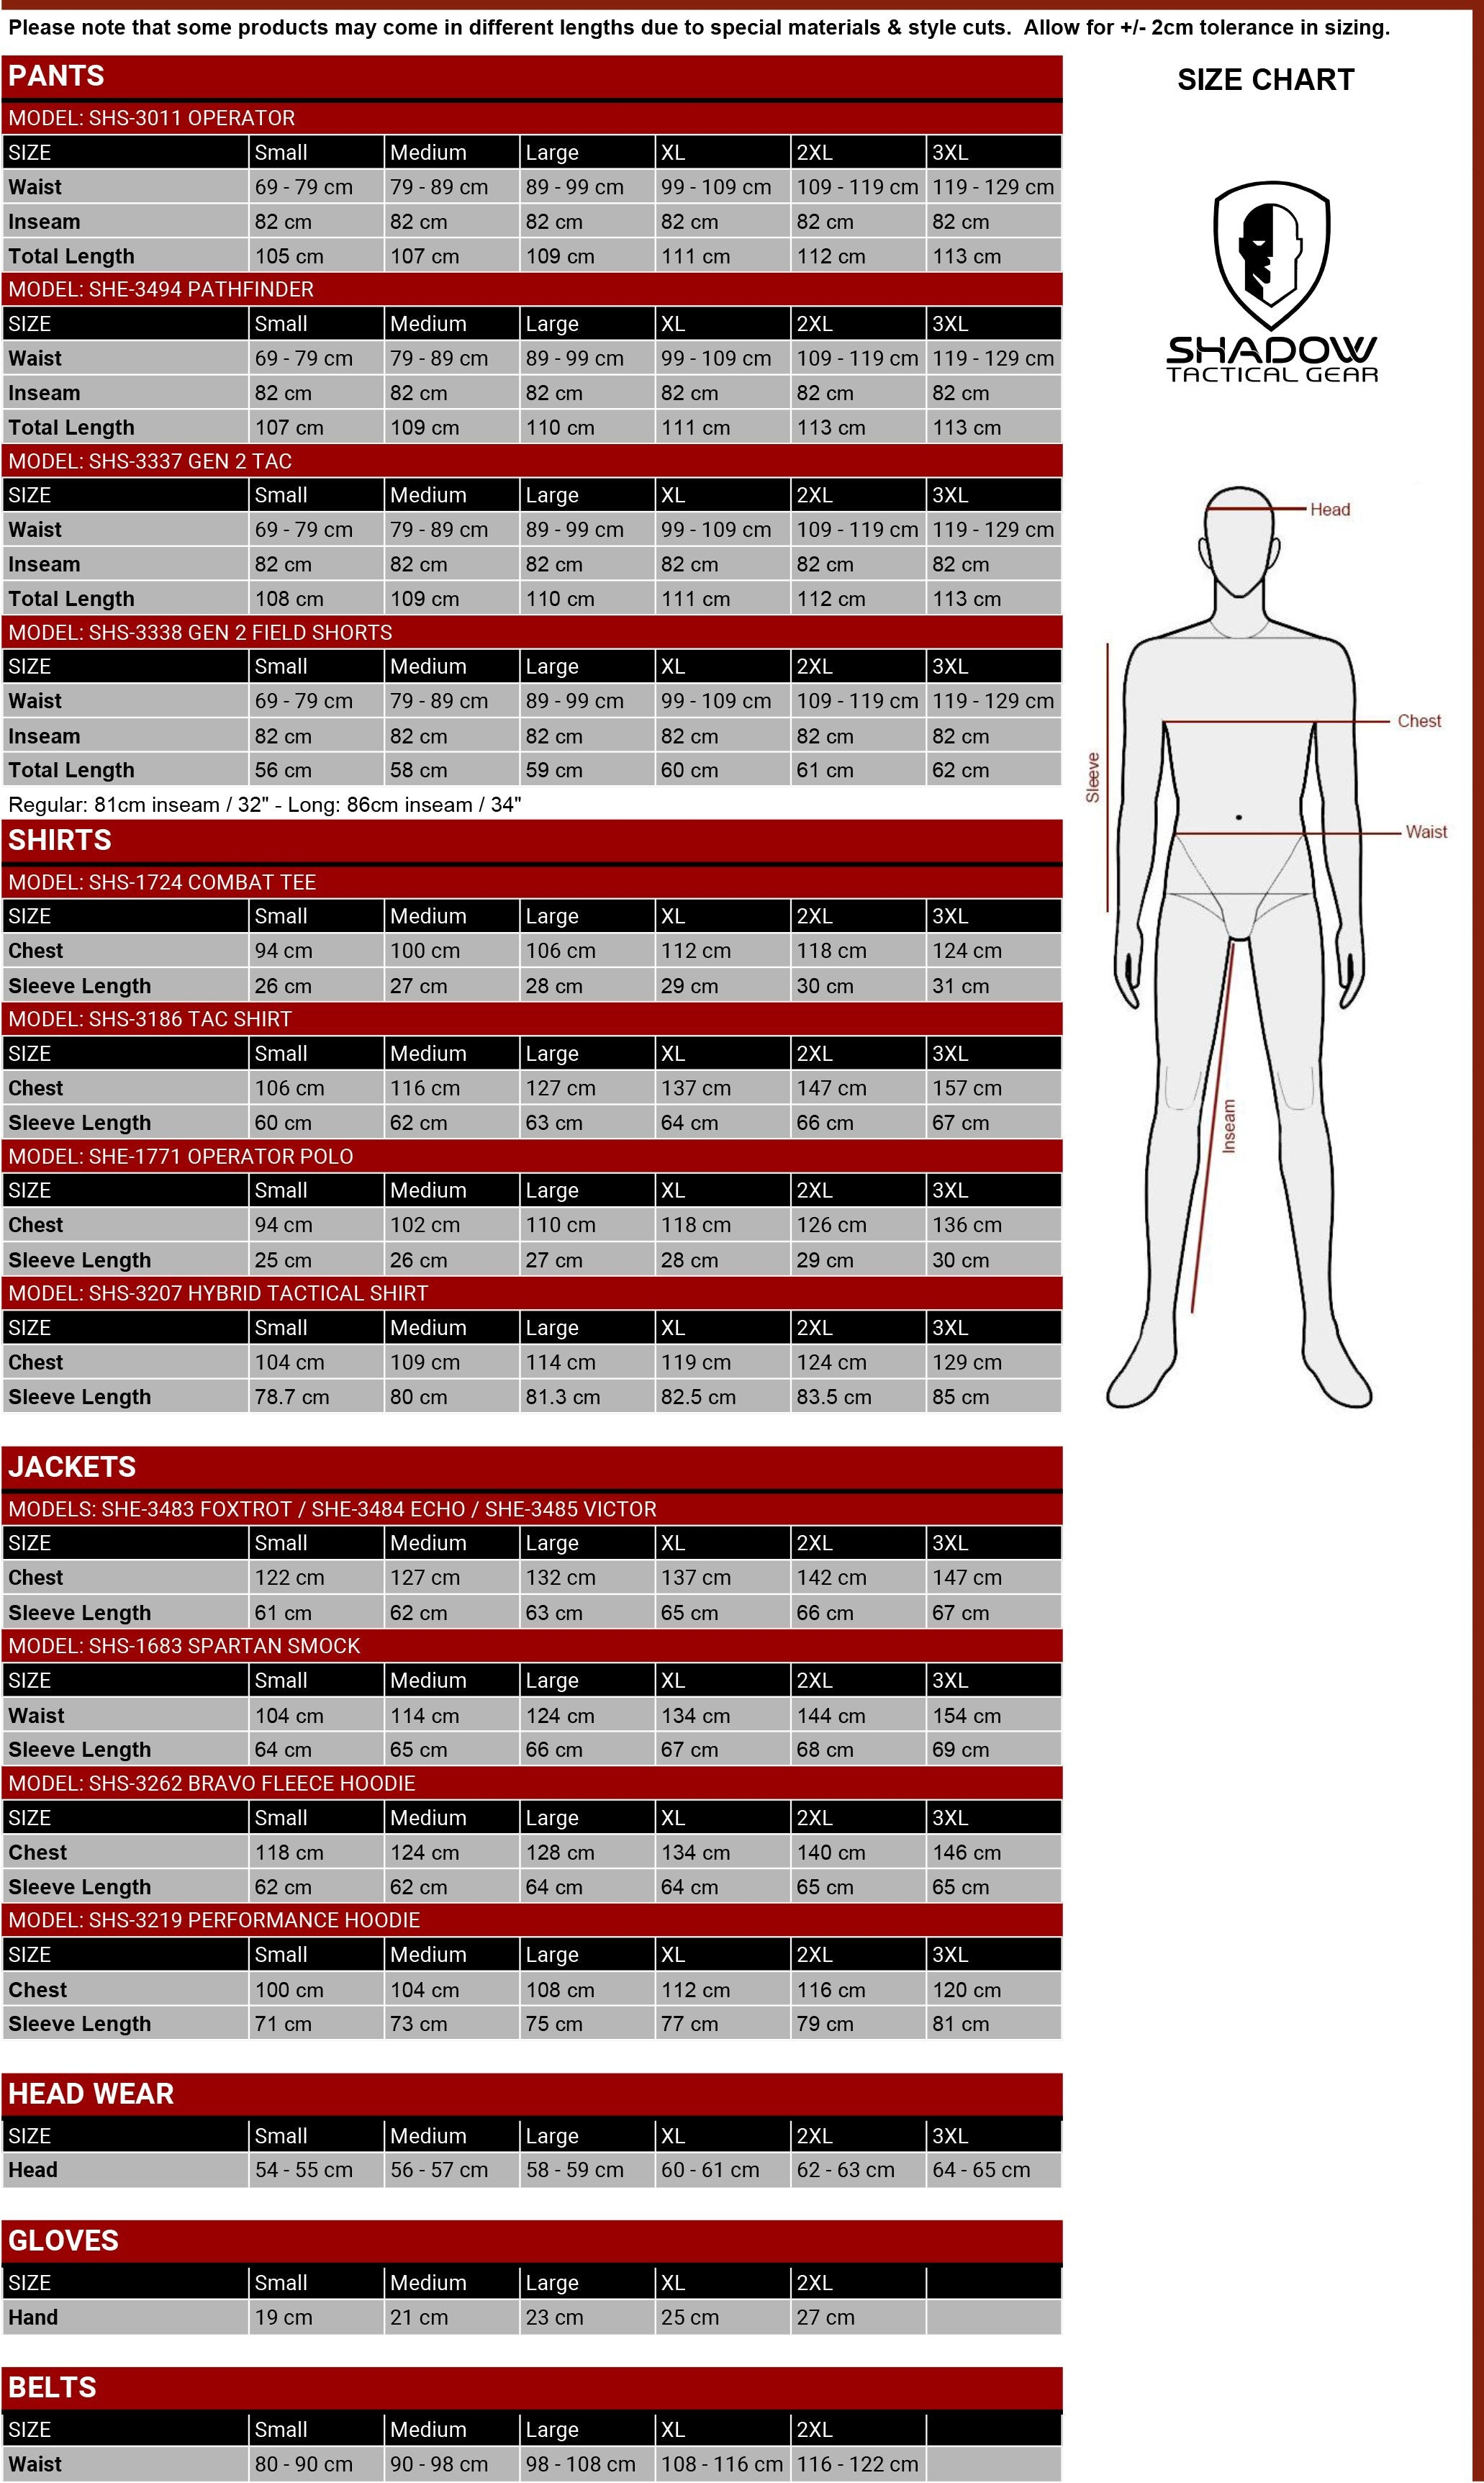 Sizing Chart - Shadow Systems